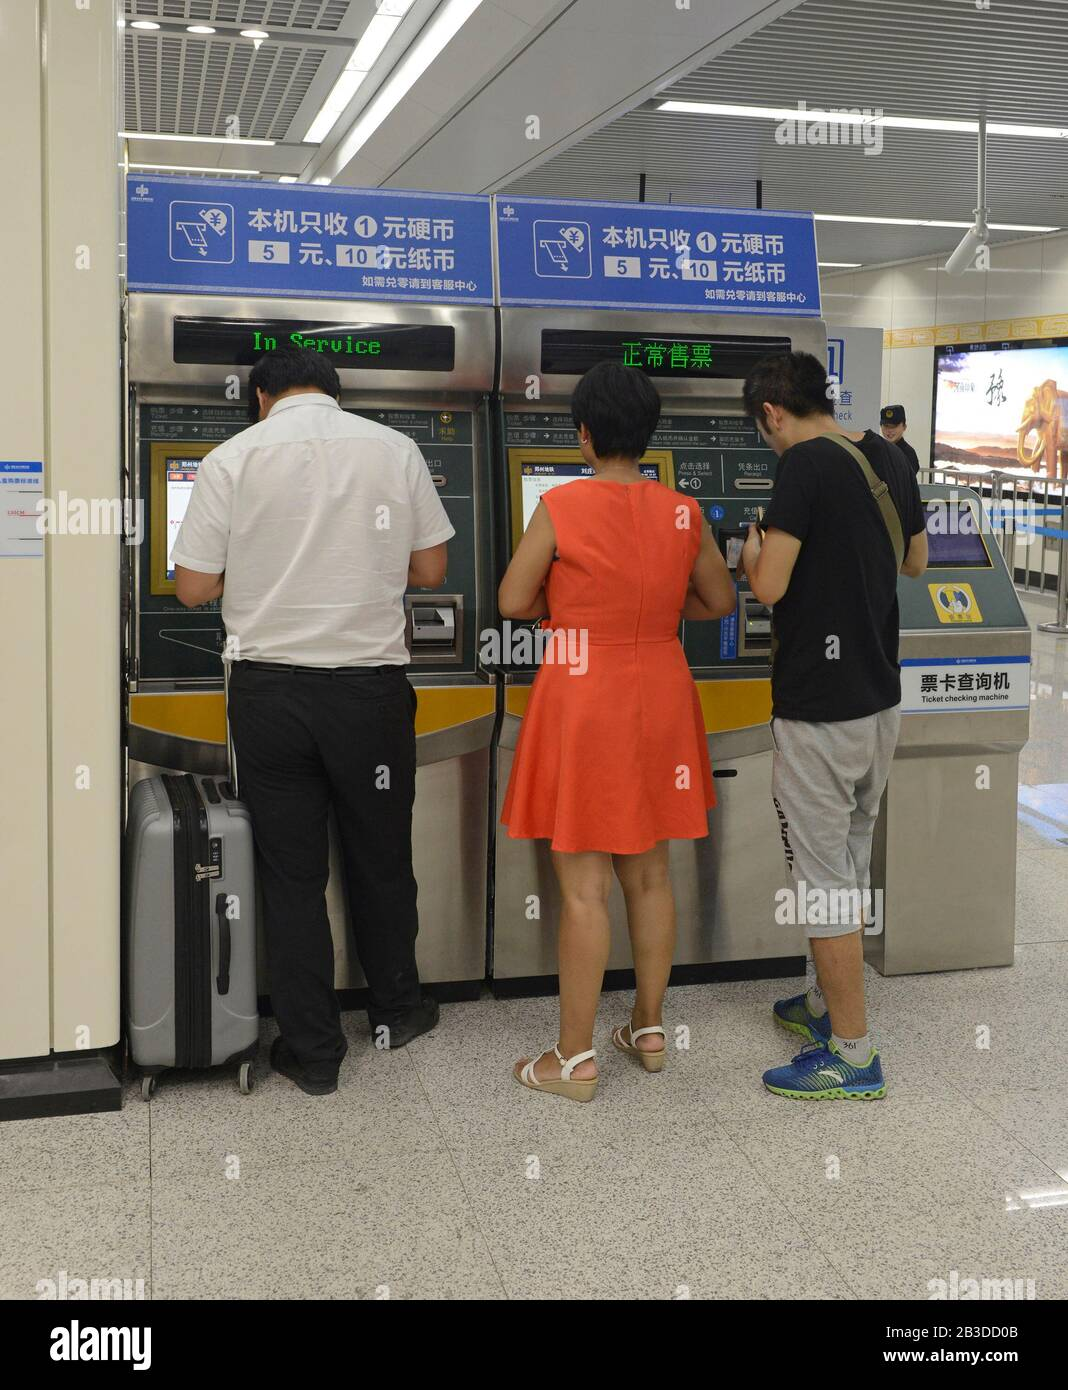 Travelers buy tickets from an automated ticket machine at Liuzhuang station at the end of Zhengzhou metro line 2, China Stock Photo